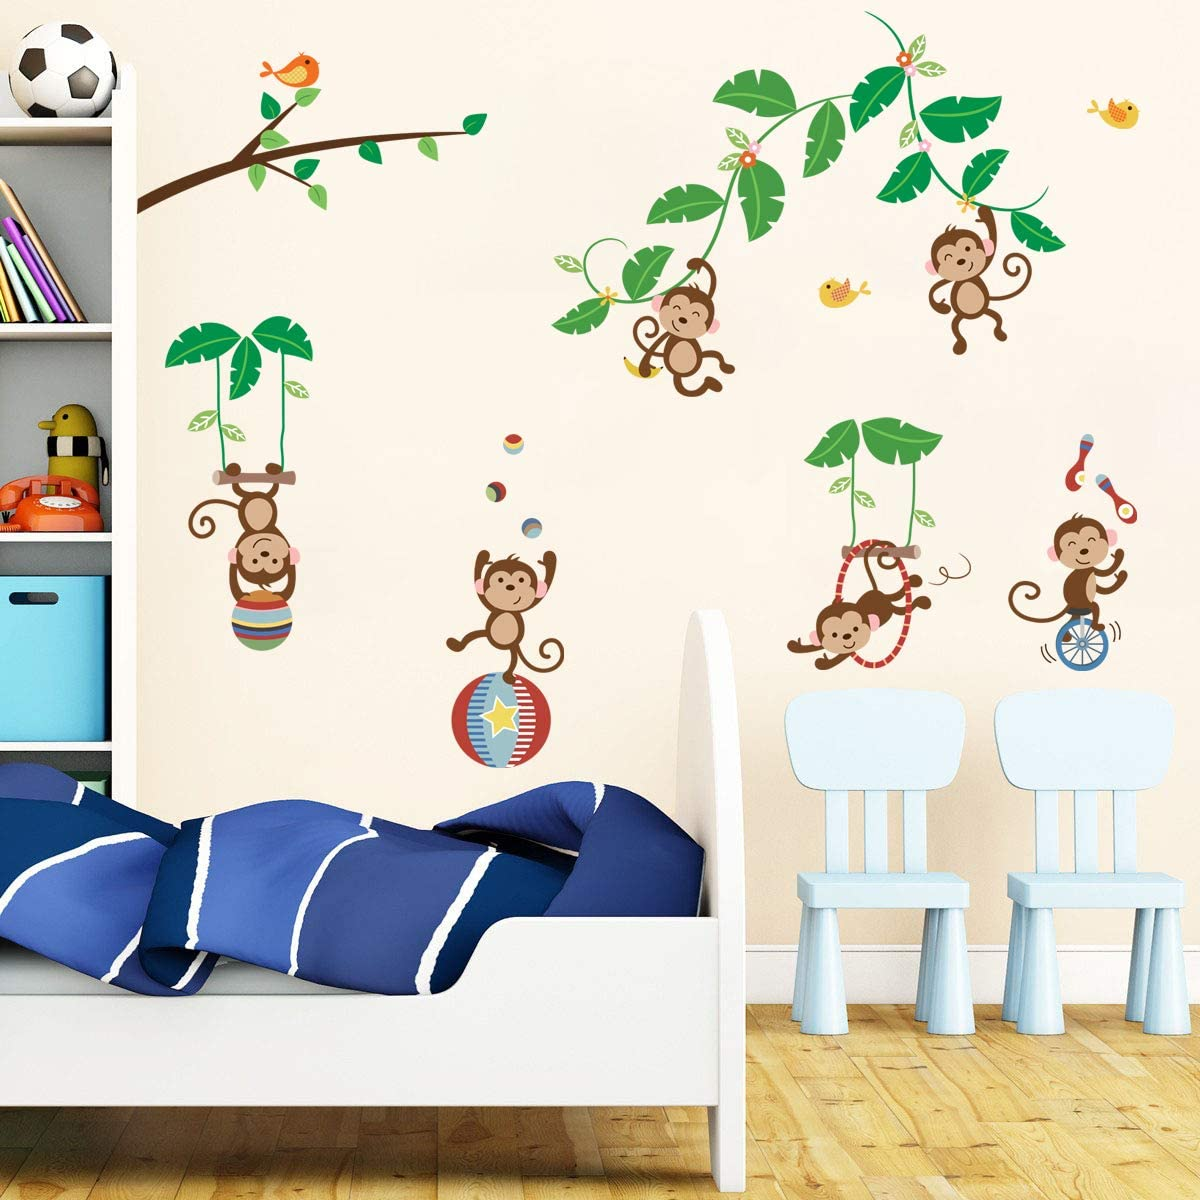 Nursery animal decals wall tree decal designed wall murals